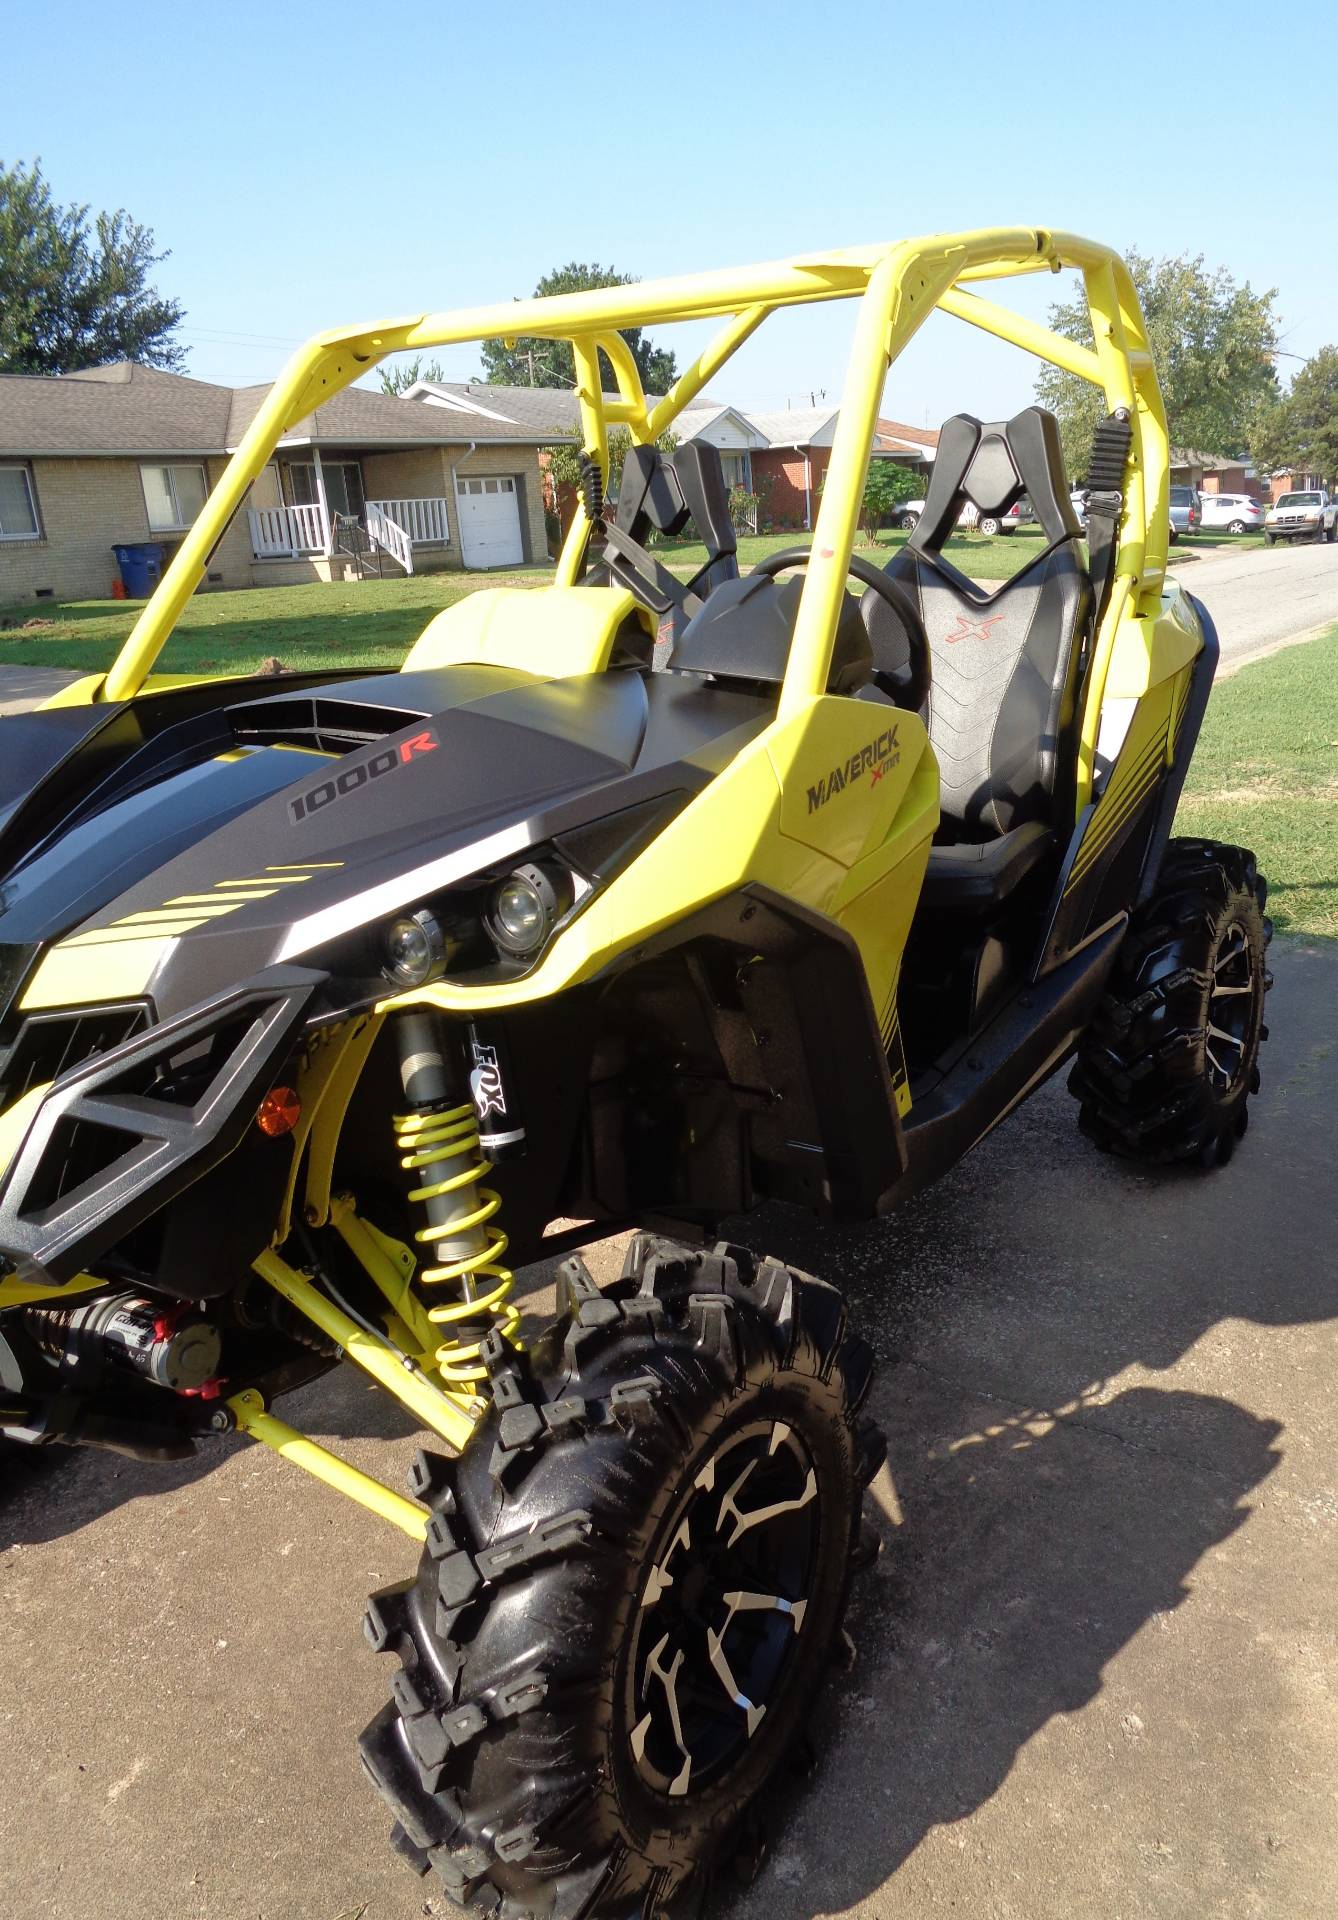 2018 Can-Am Maverick X MR in Tulsa, Oklahoma - Photo 8